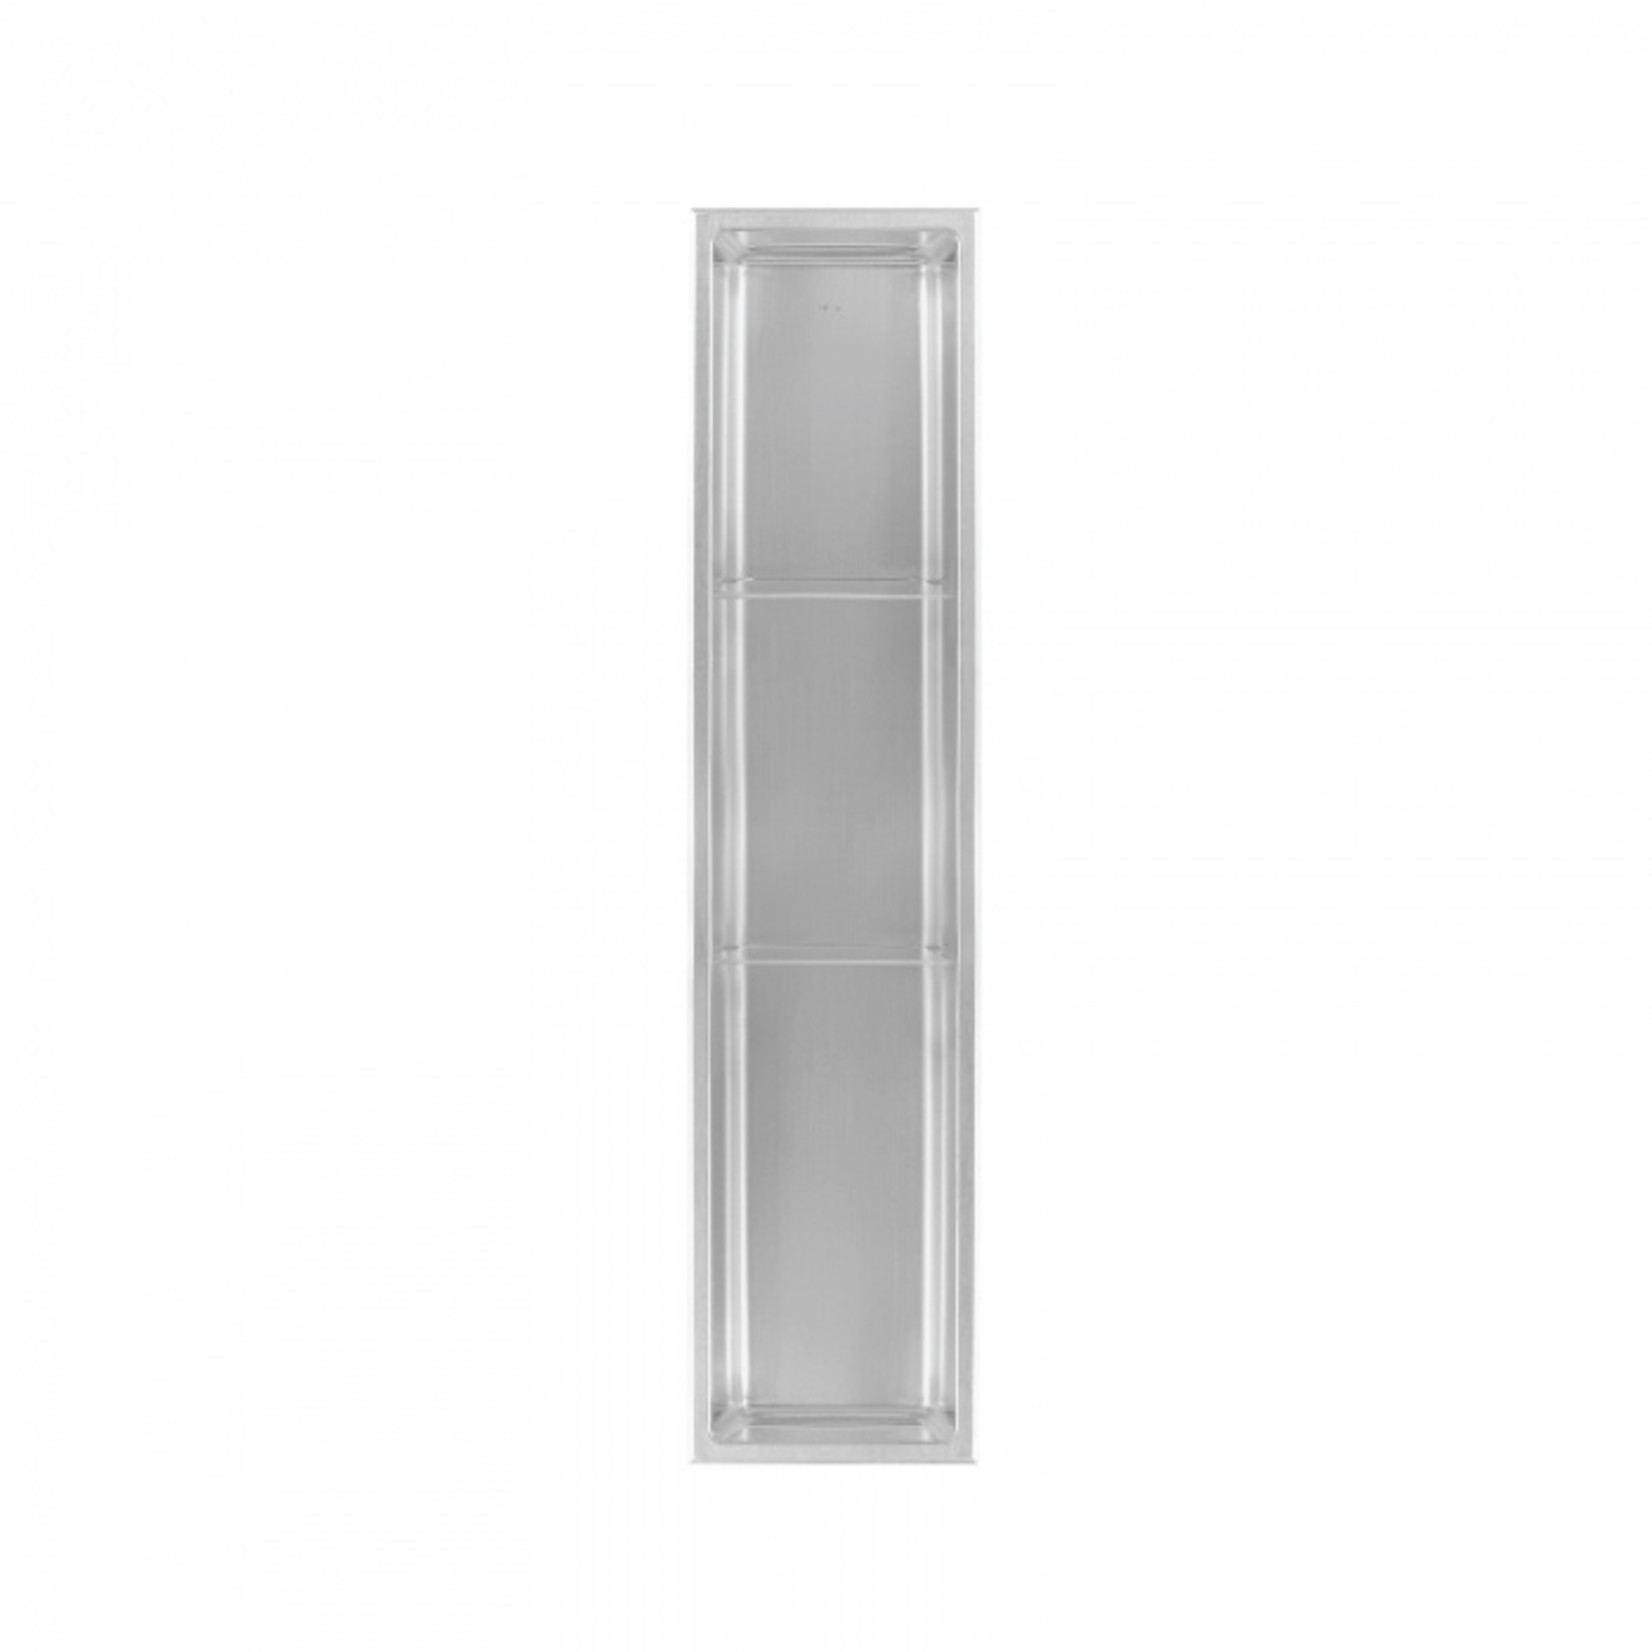 Wall niche with 2 shelves 36x8 Stainless steel Nautika NI368T